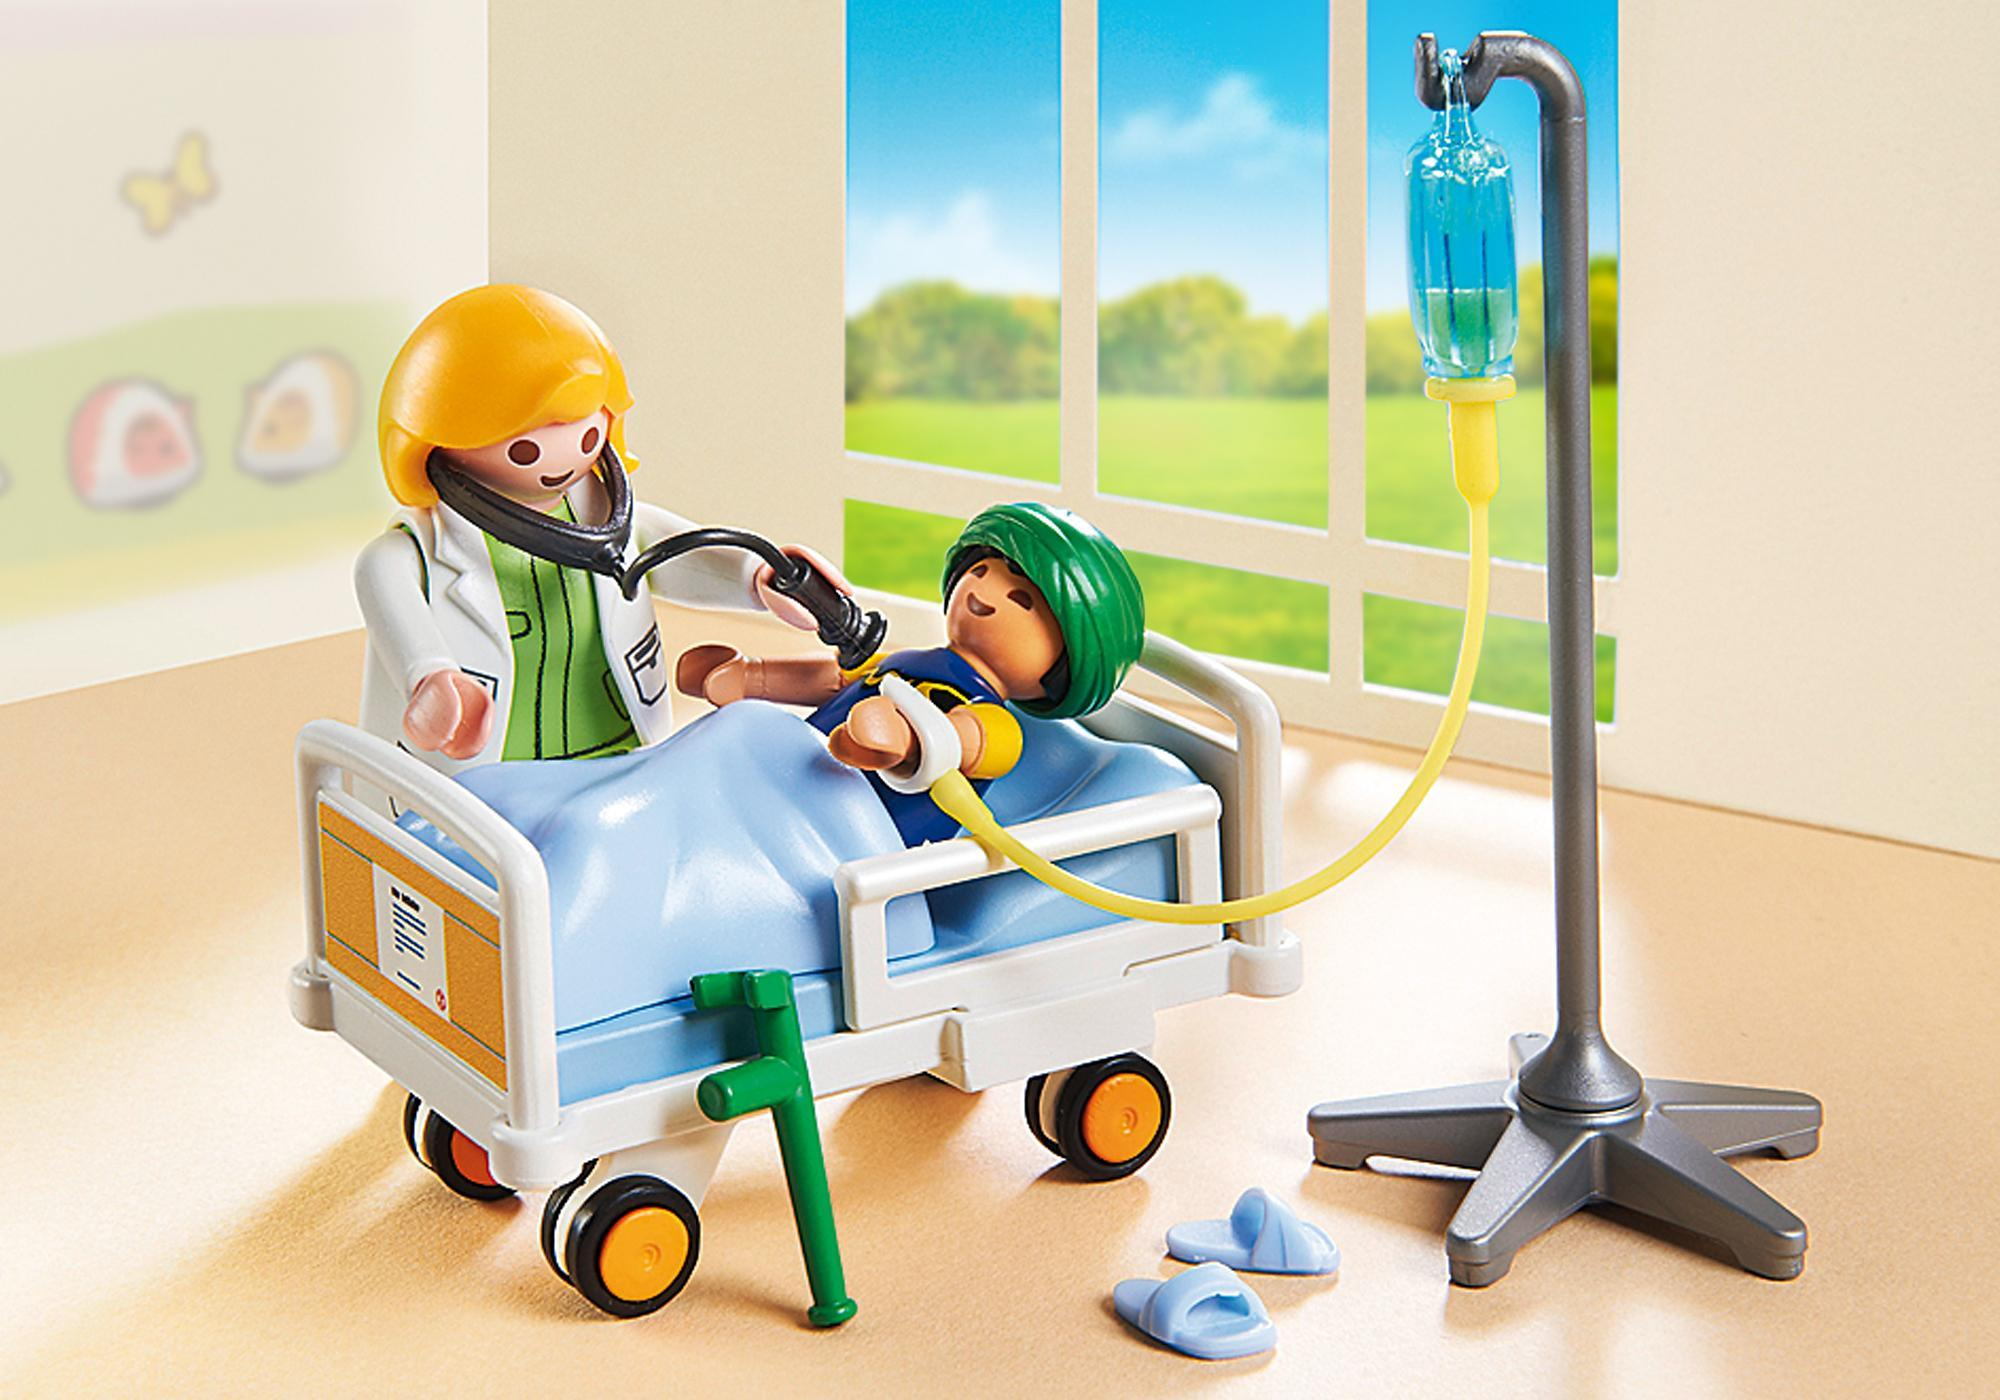 http://media.playmobil.com/i/playmobil/6661_product_extra1